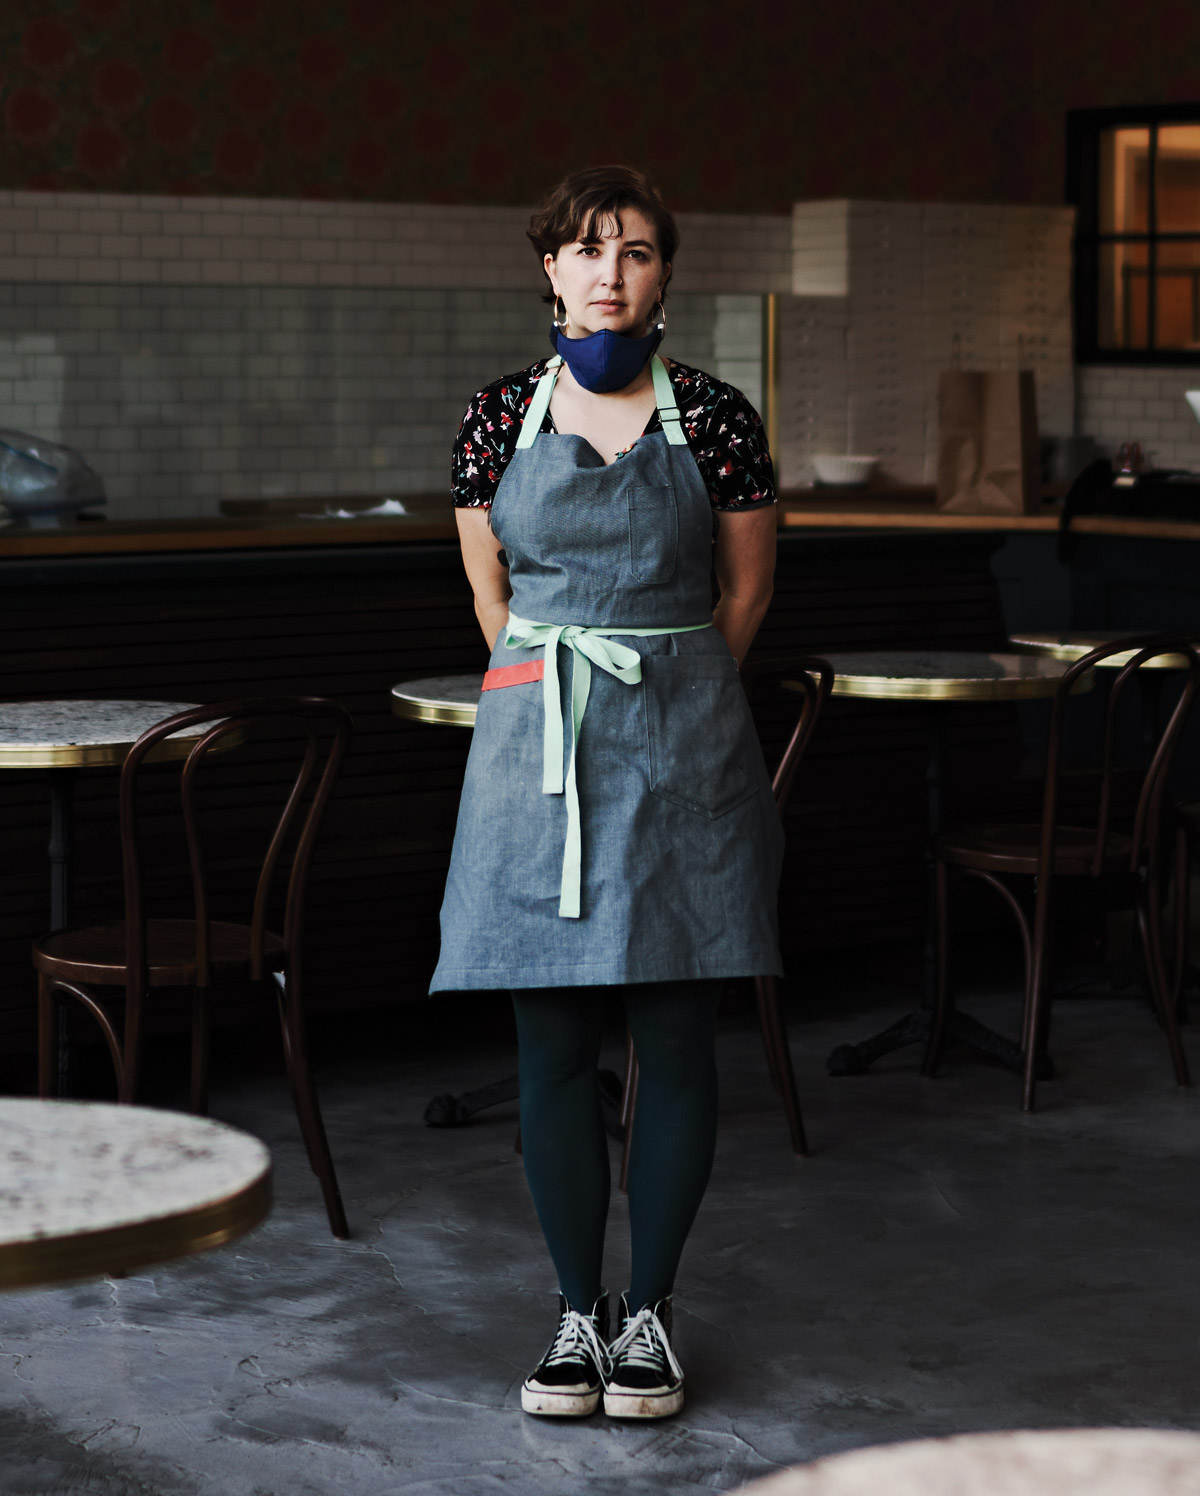 Little Tart Bakeshop owner Sarah O'Brien